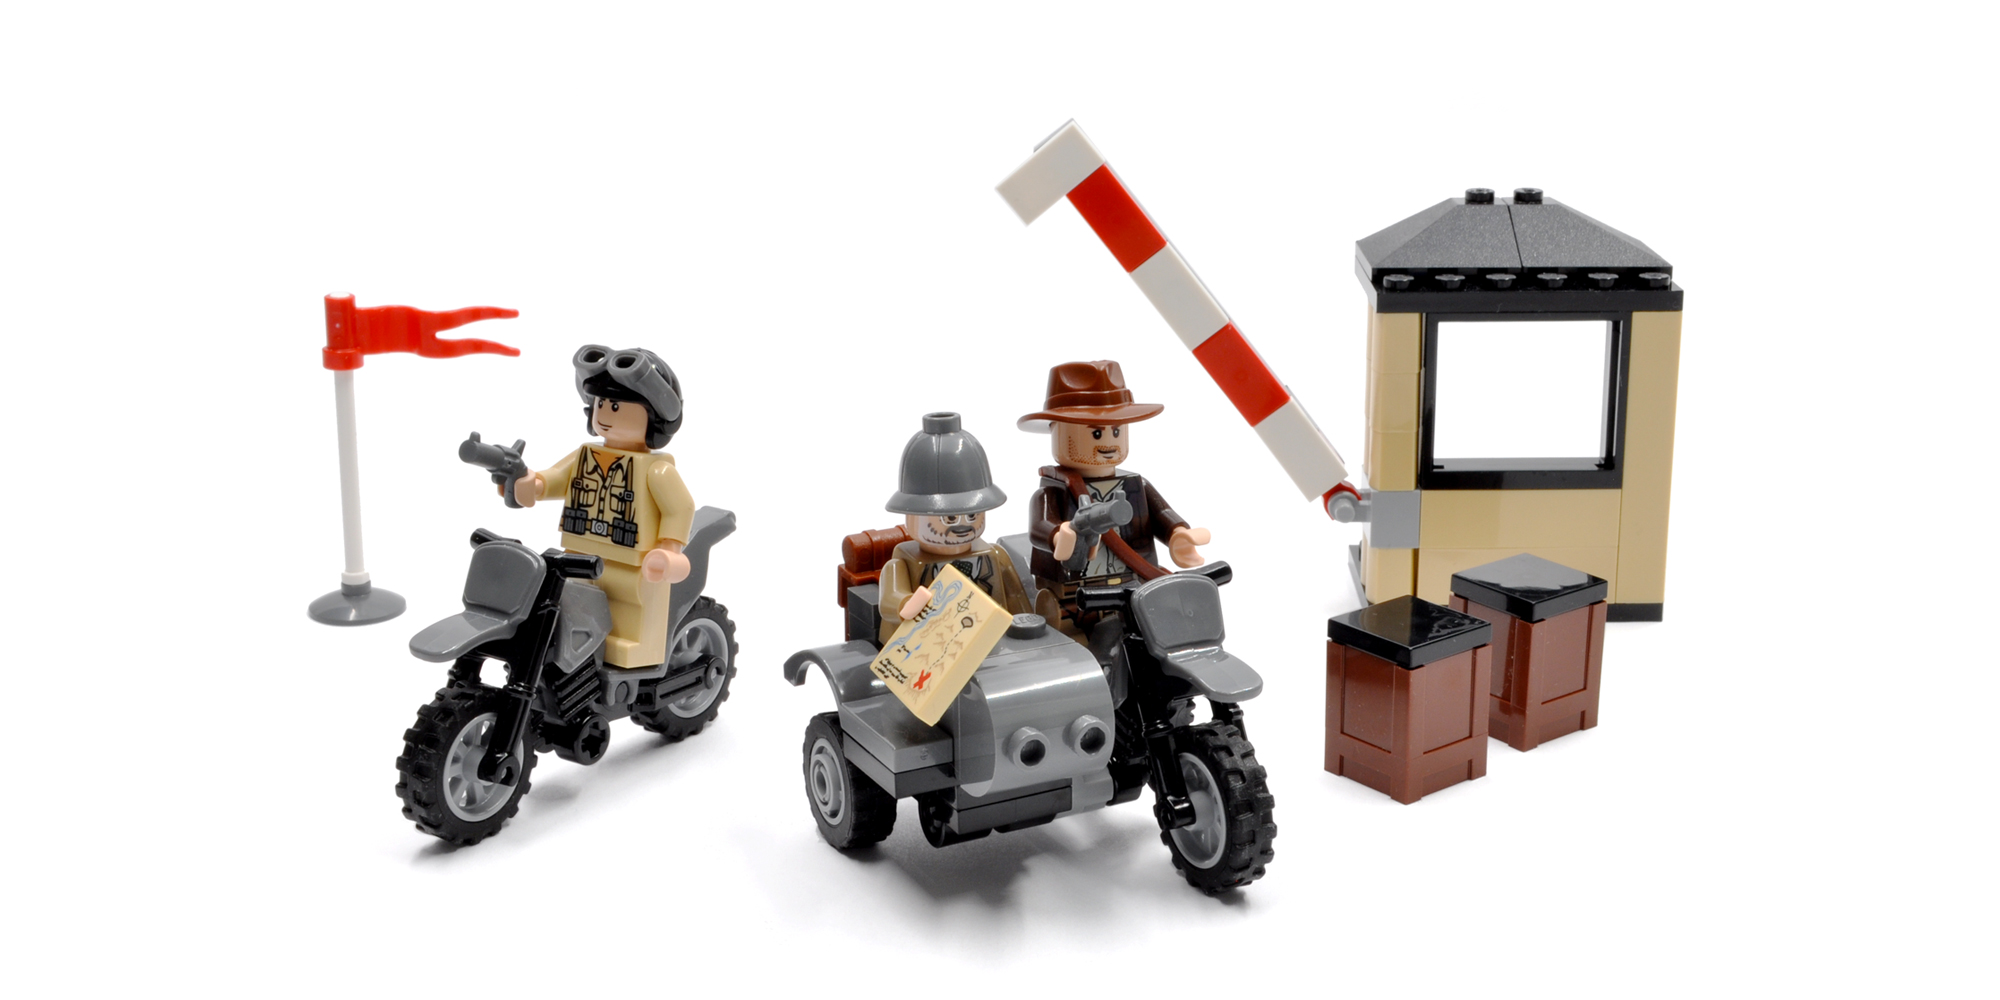 Indiana Jones Motorcycle Chase (7620)